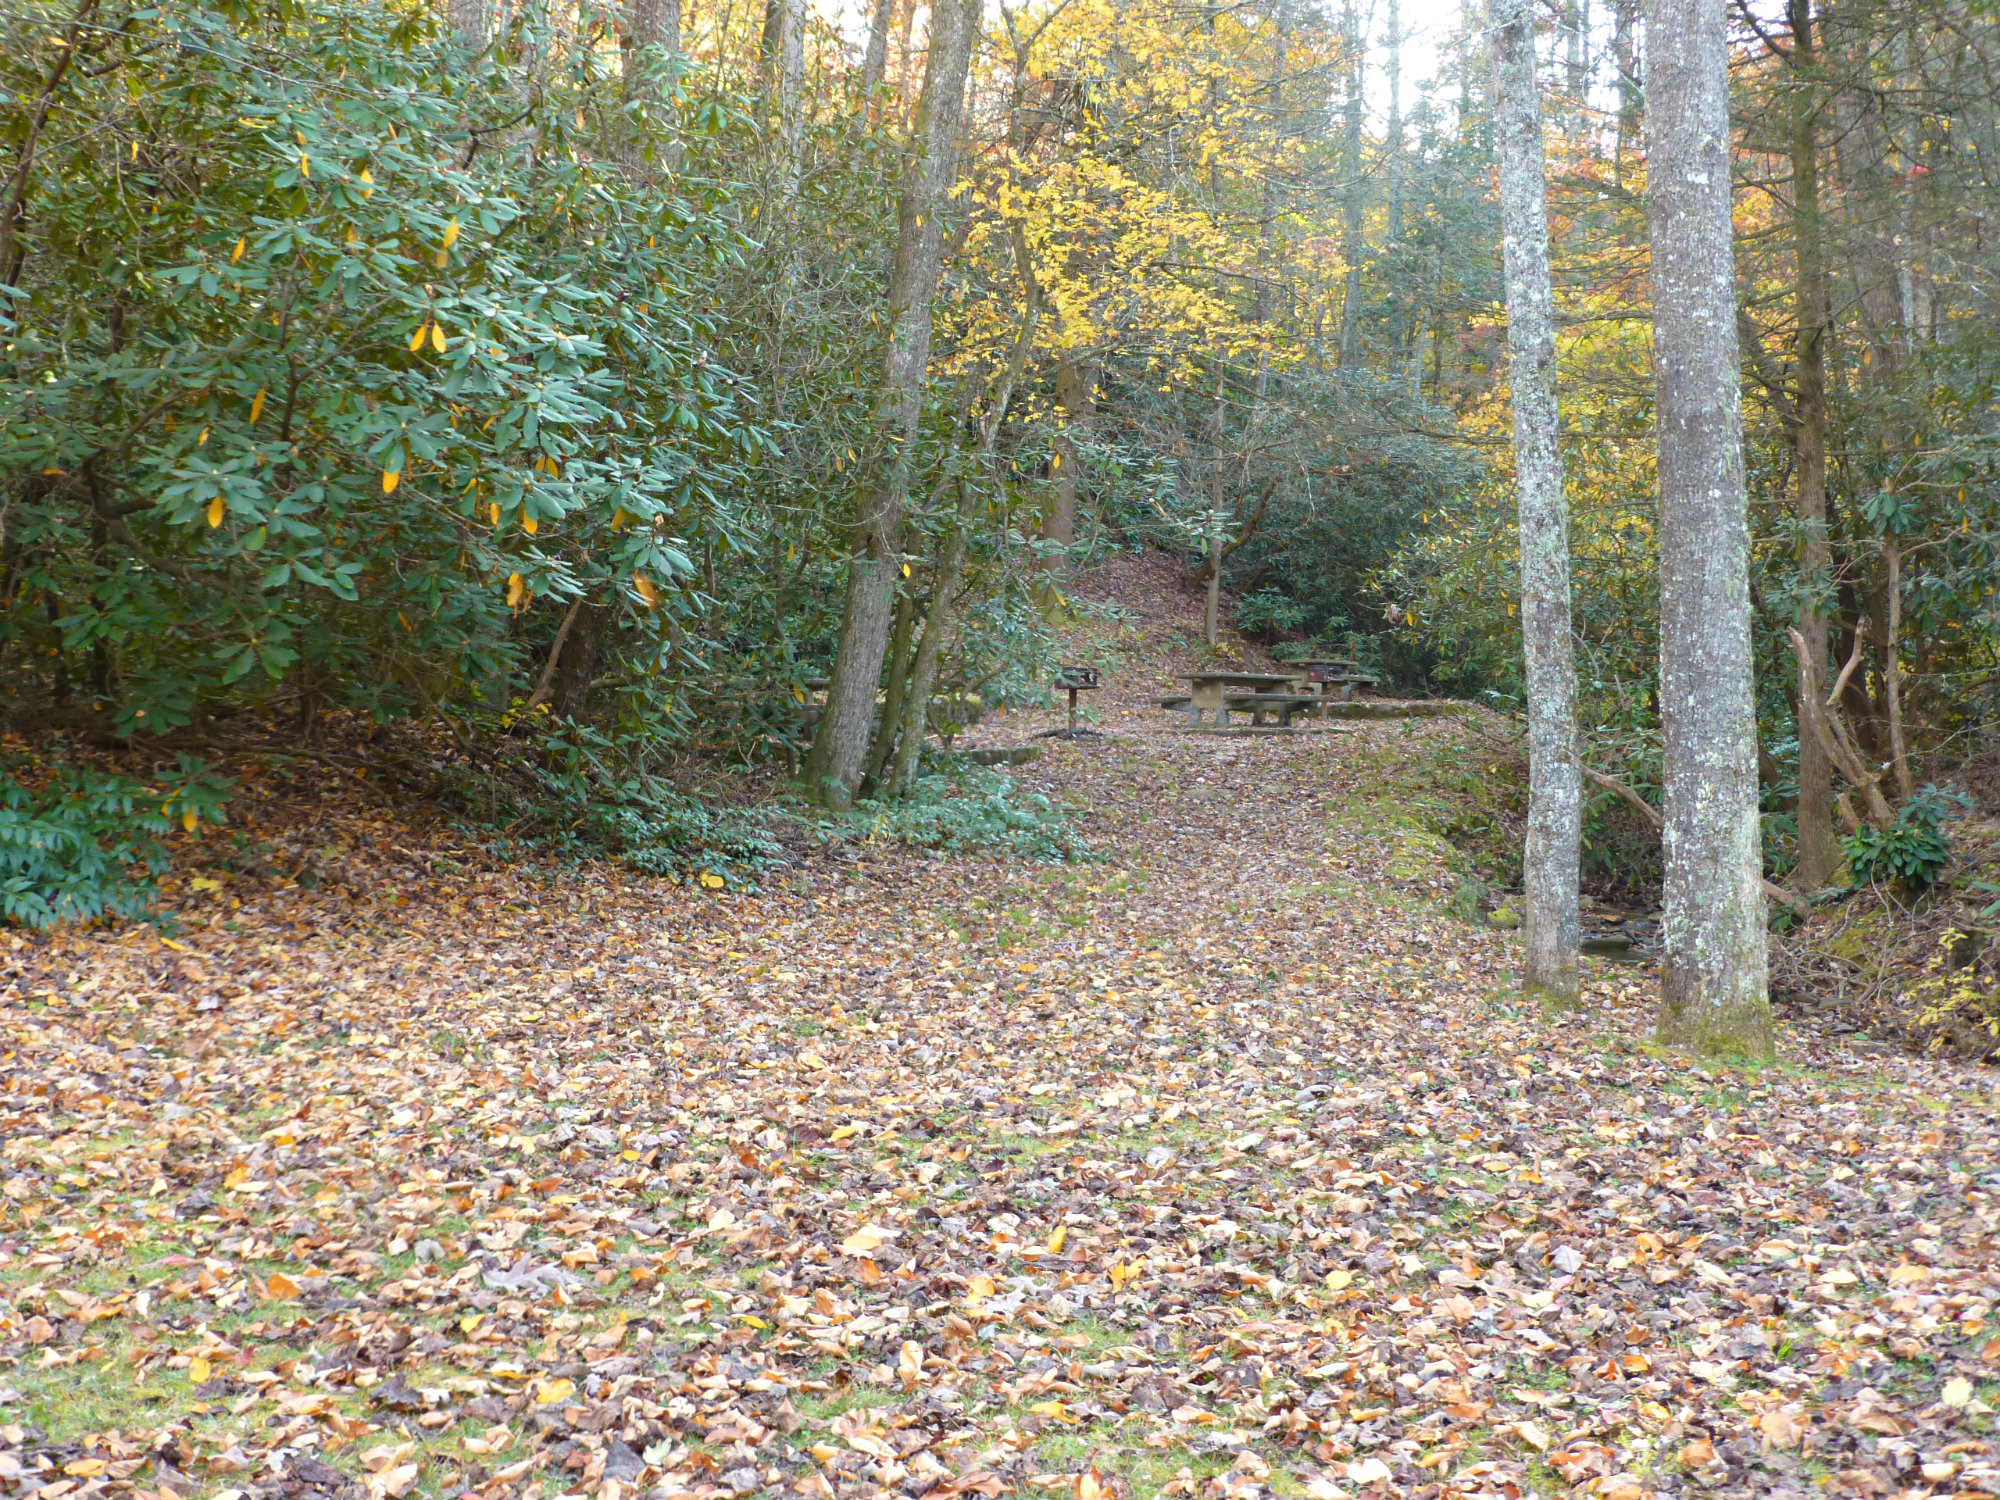 Leaf covered wide path through the trees leading to picnic tables